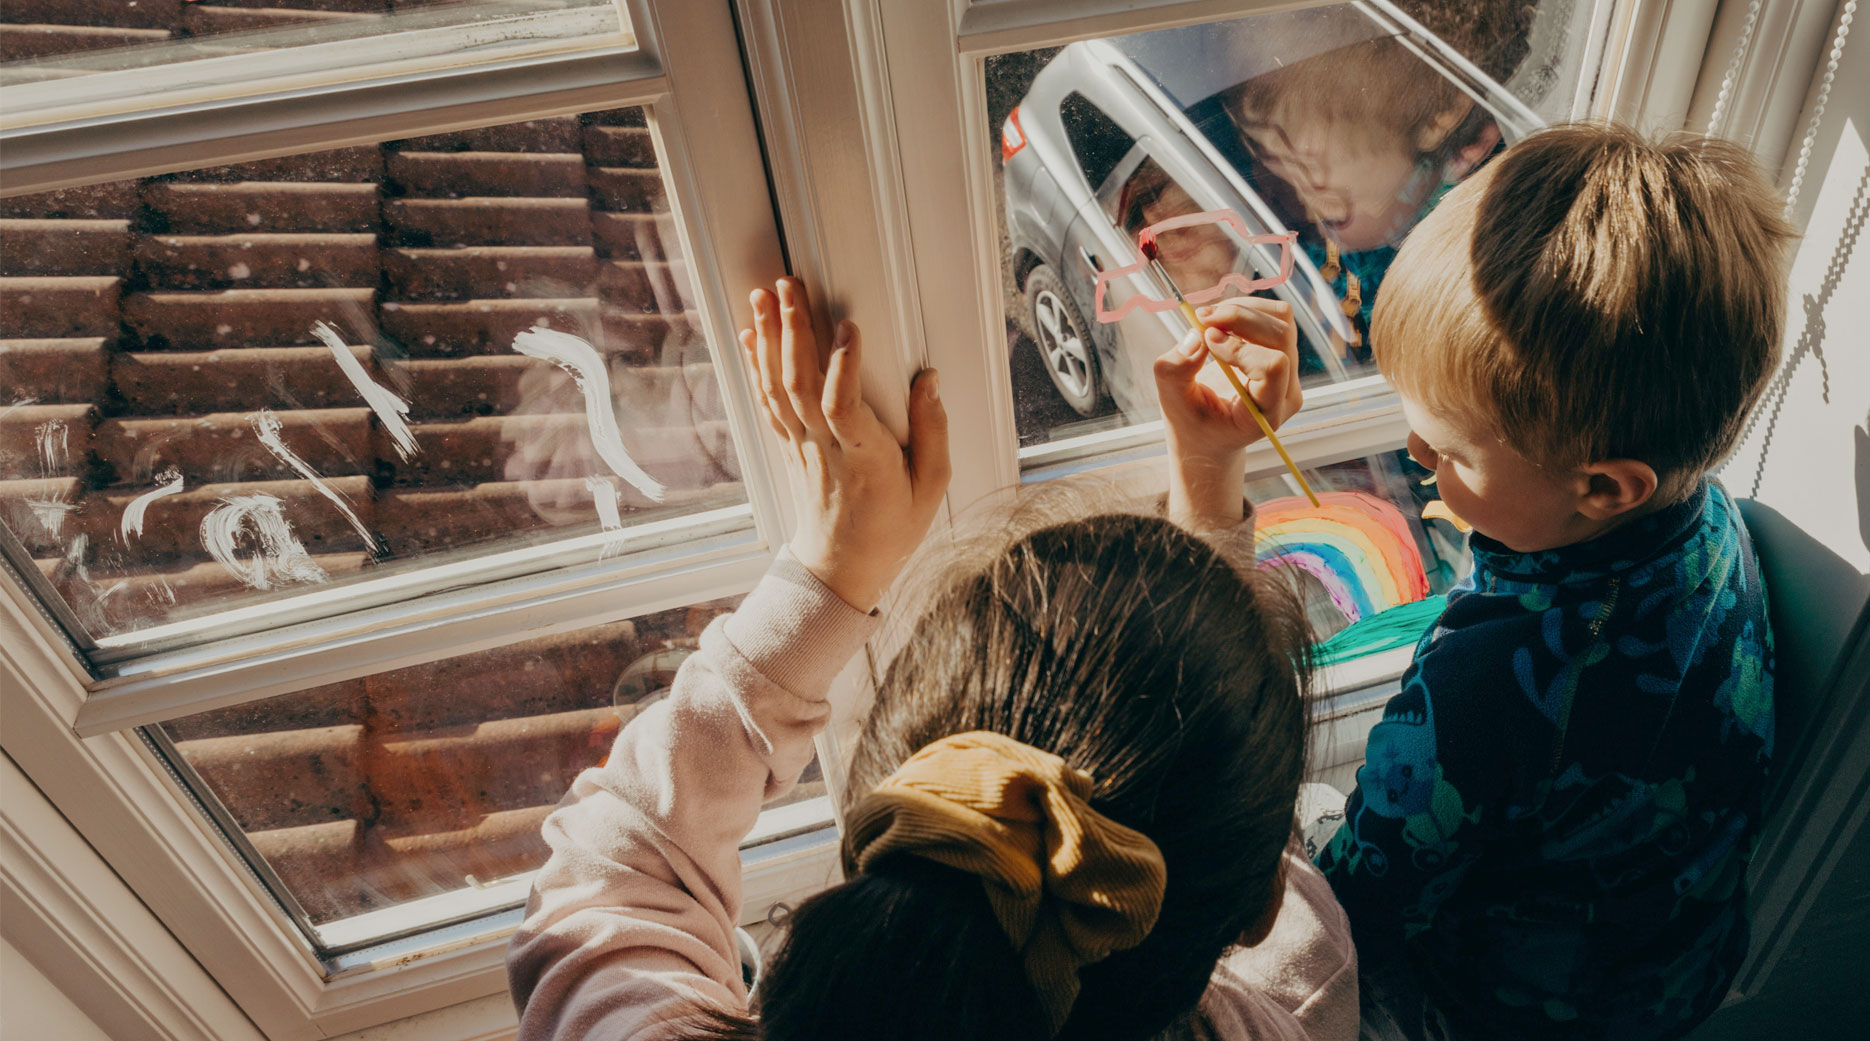 Children painting colourful pictures on their bedroom window so others can enjoy the imagery